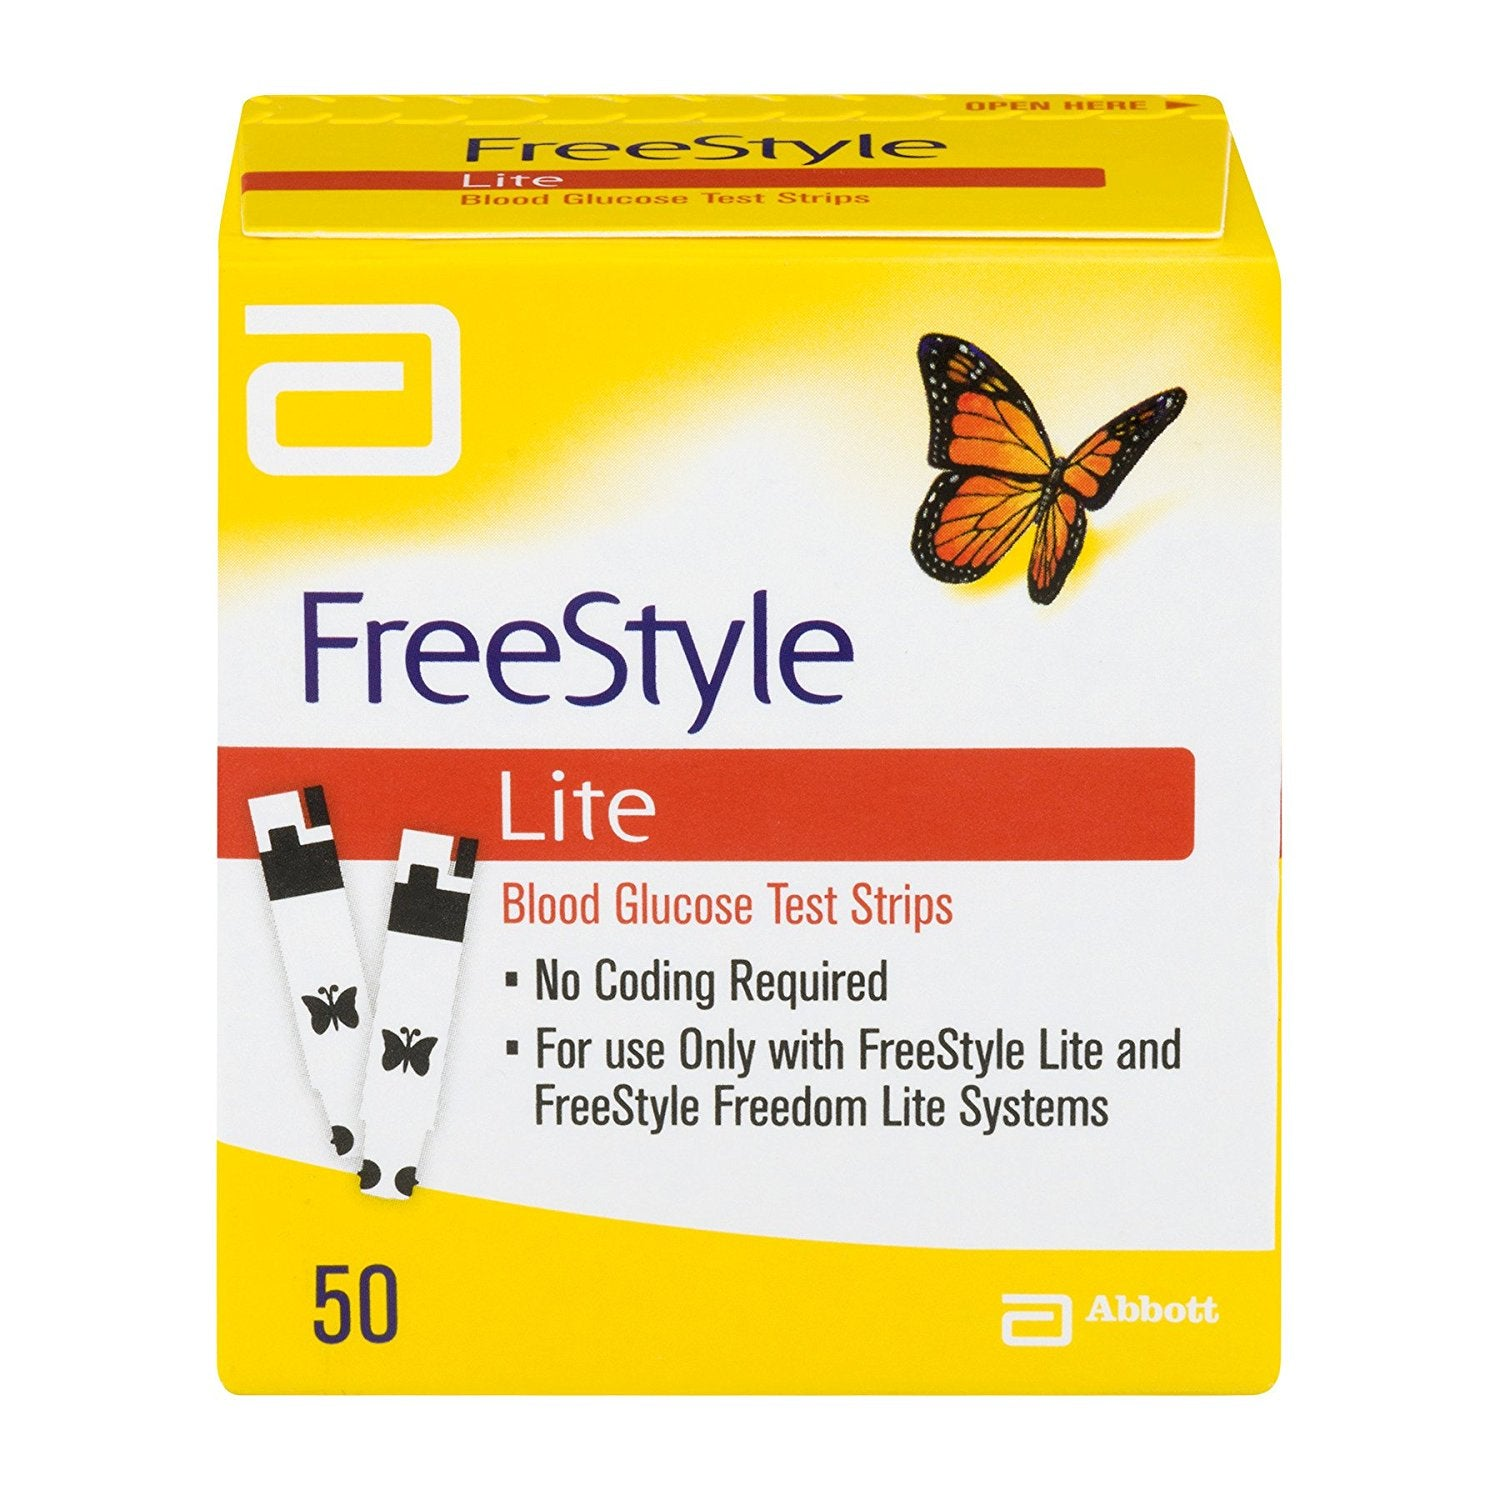 4-6 Per Day (200 FreeStyle Lite Strips)